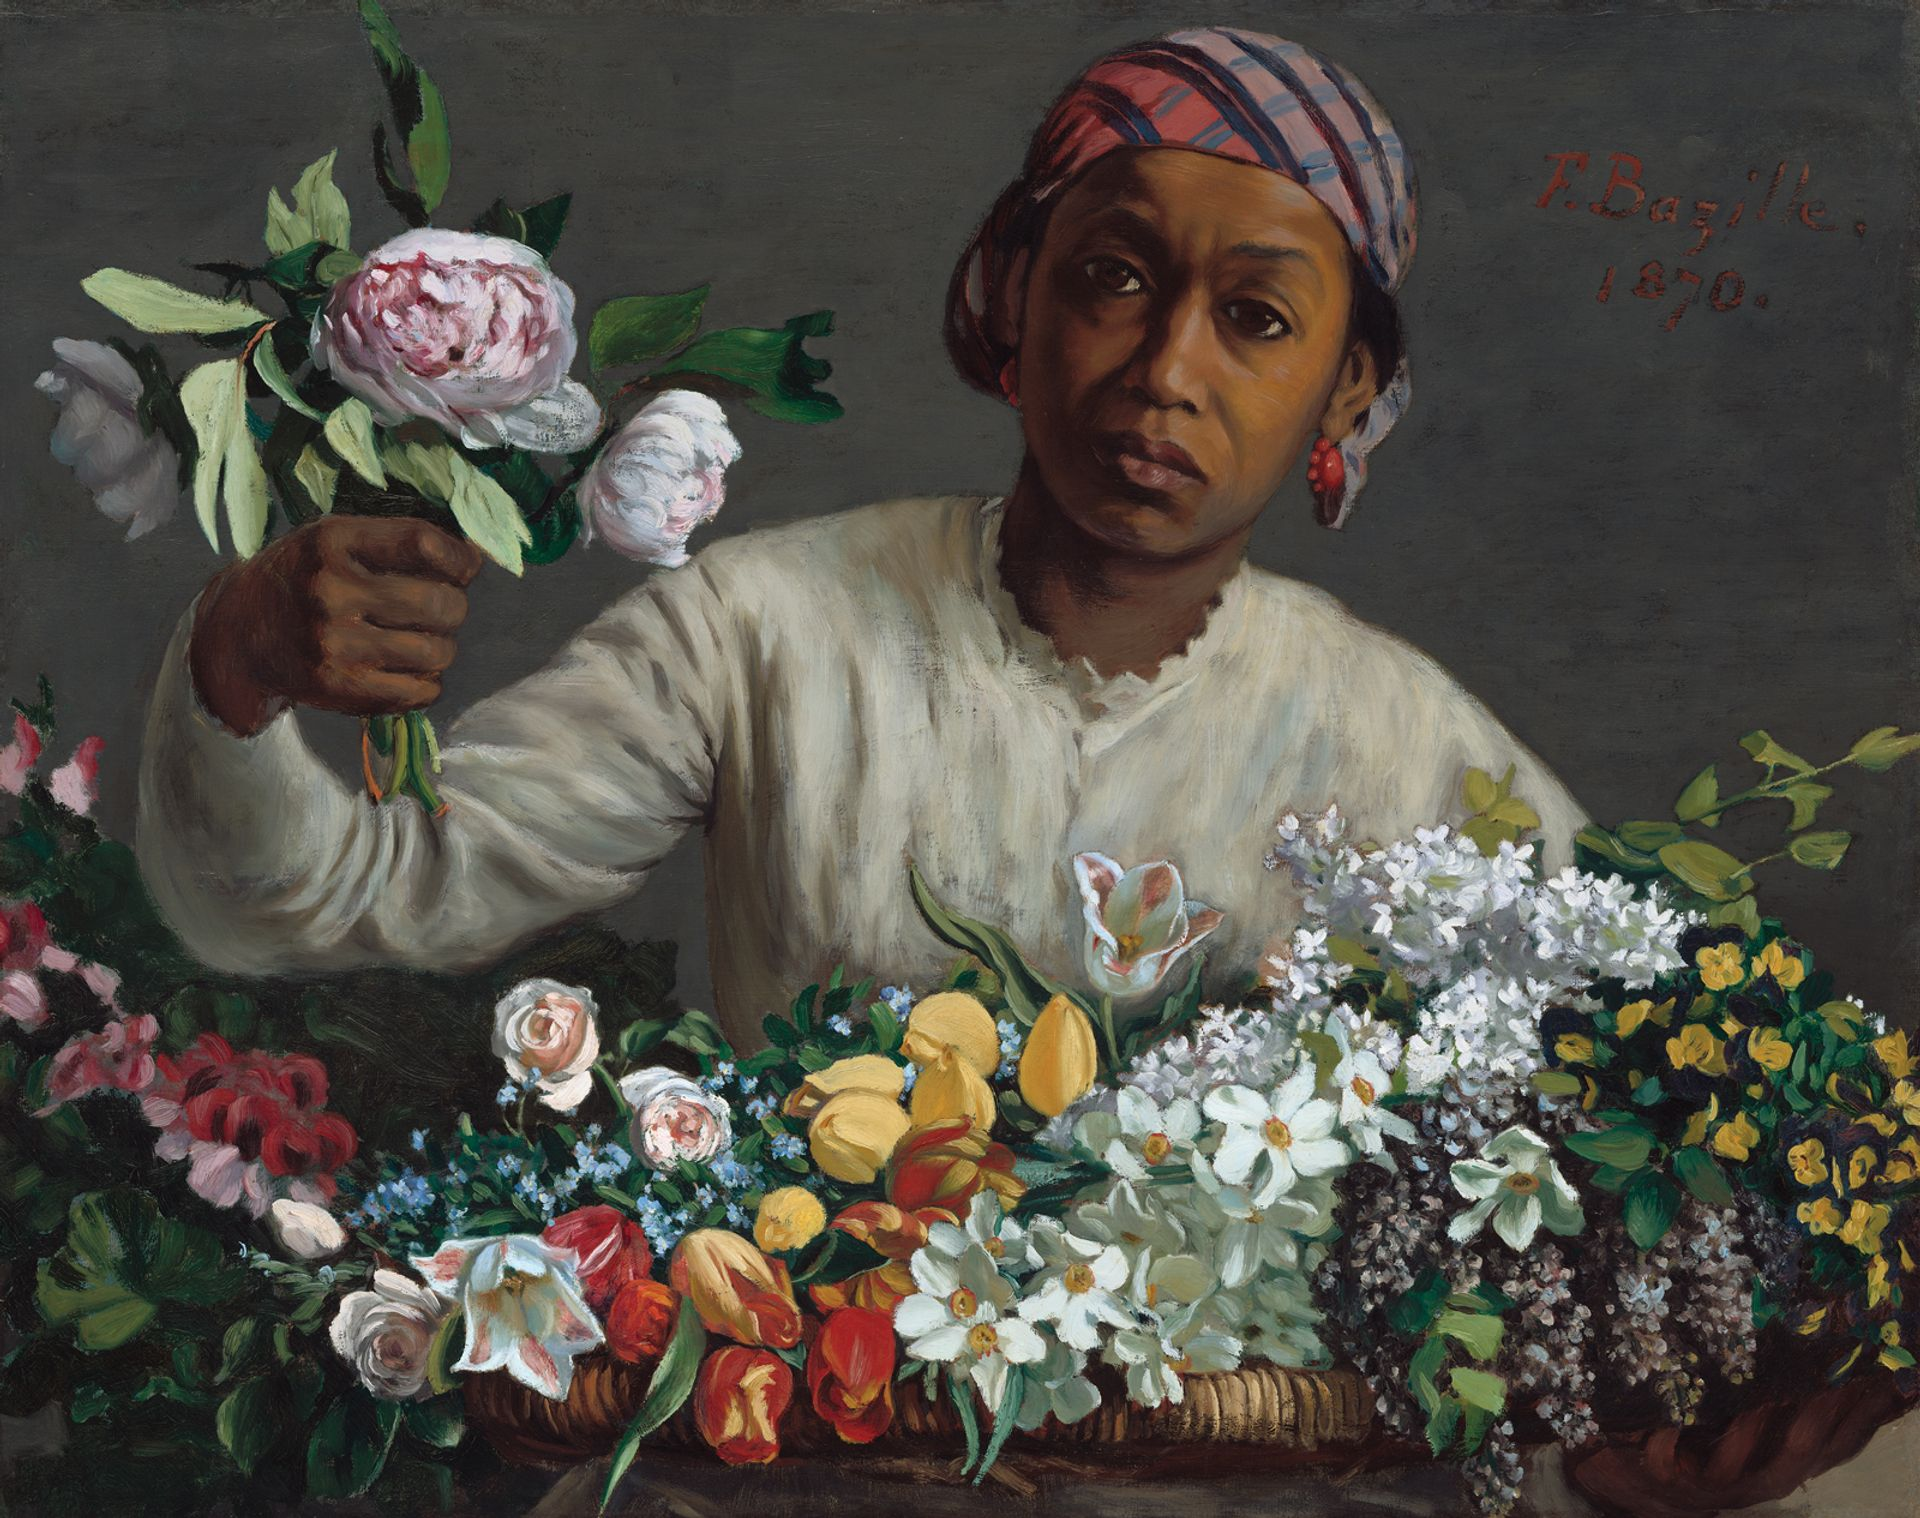 Frédéric Bazille's Young Woman with Peonies (1870) Courtesy of the National Gallery of Art, Washington, DC